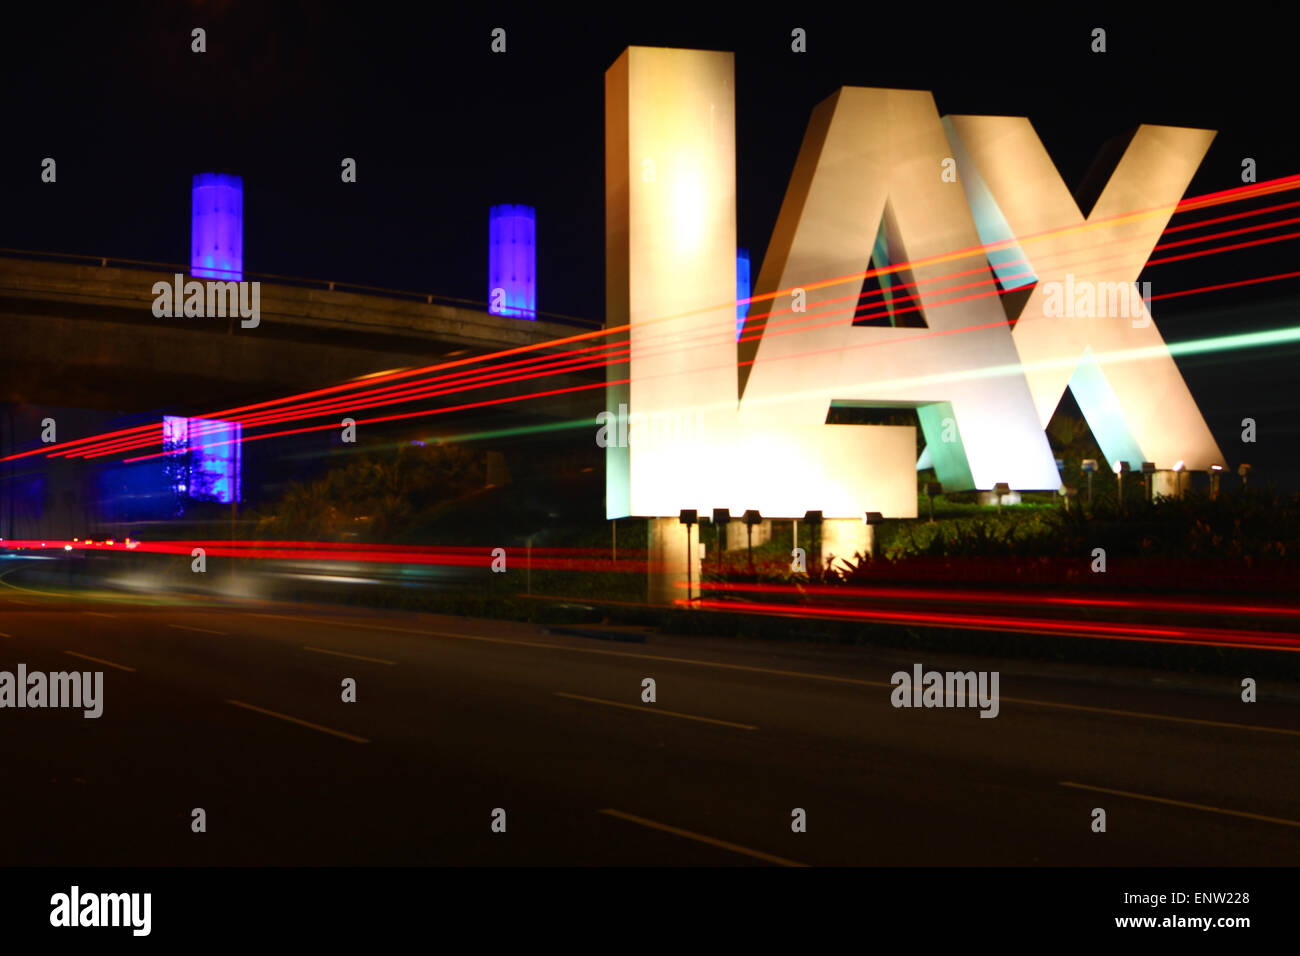 The LAX sign, Los Angeles airport during the nighttime - Stock Image